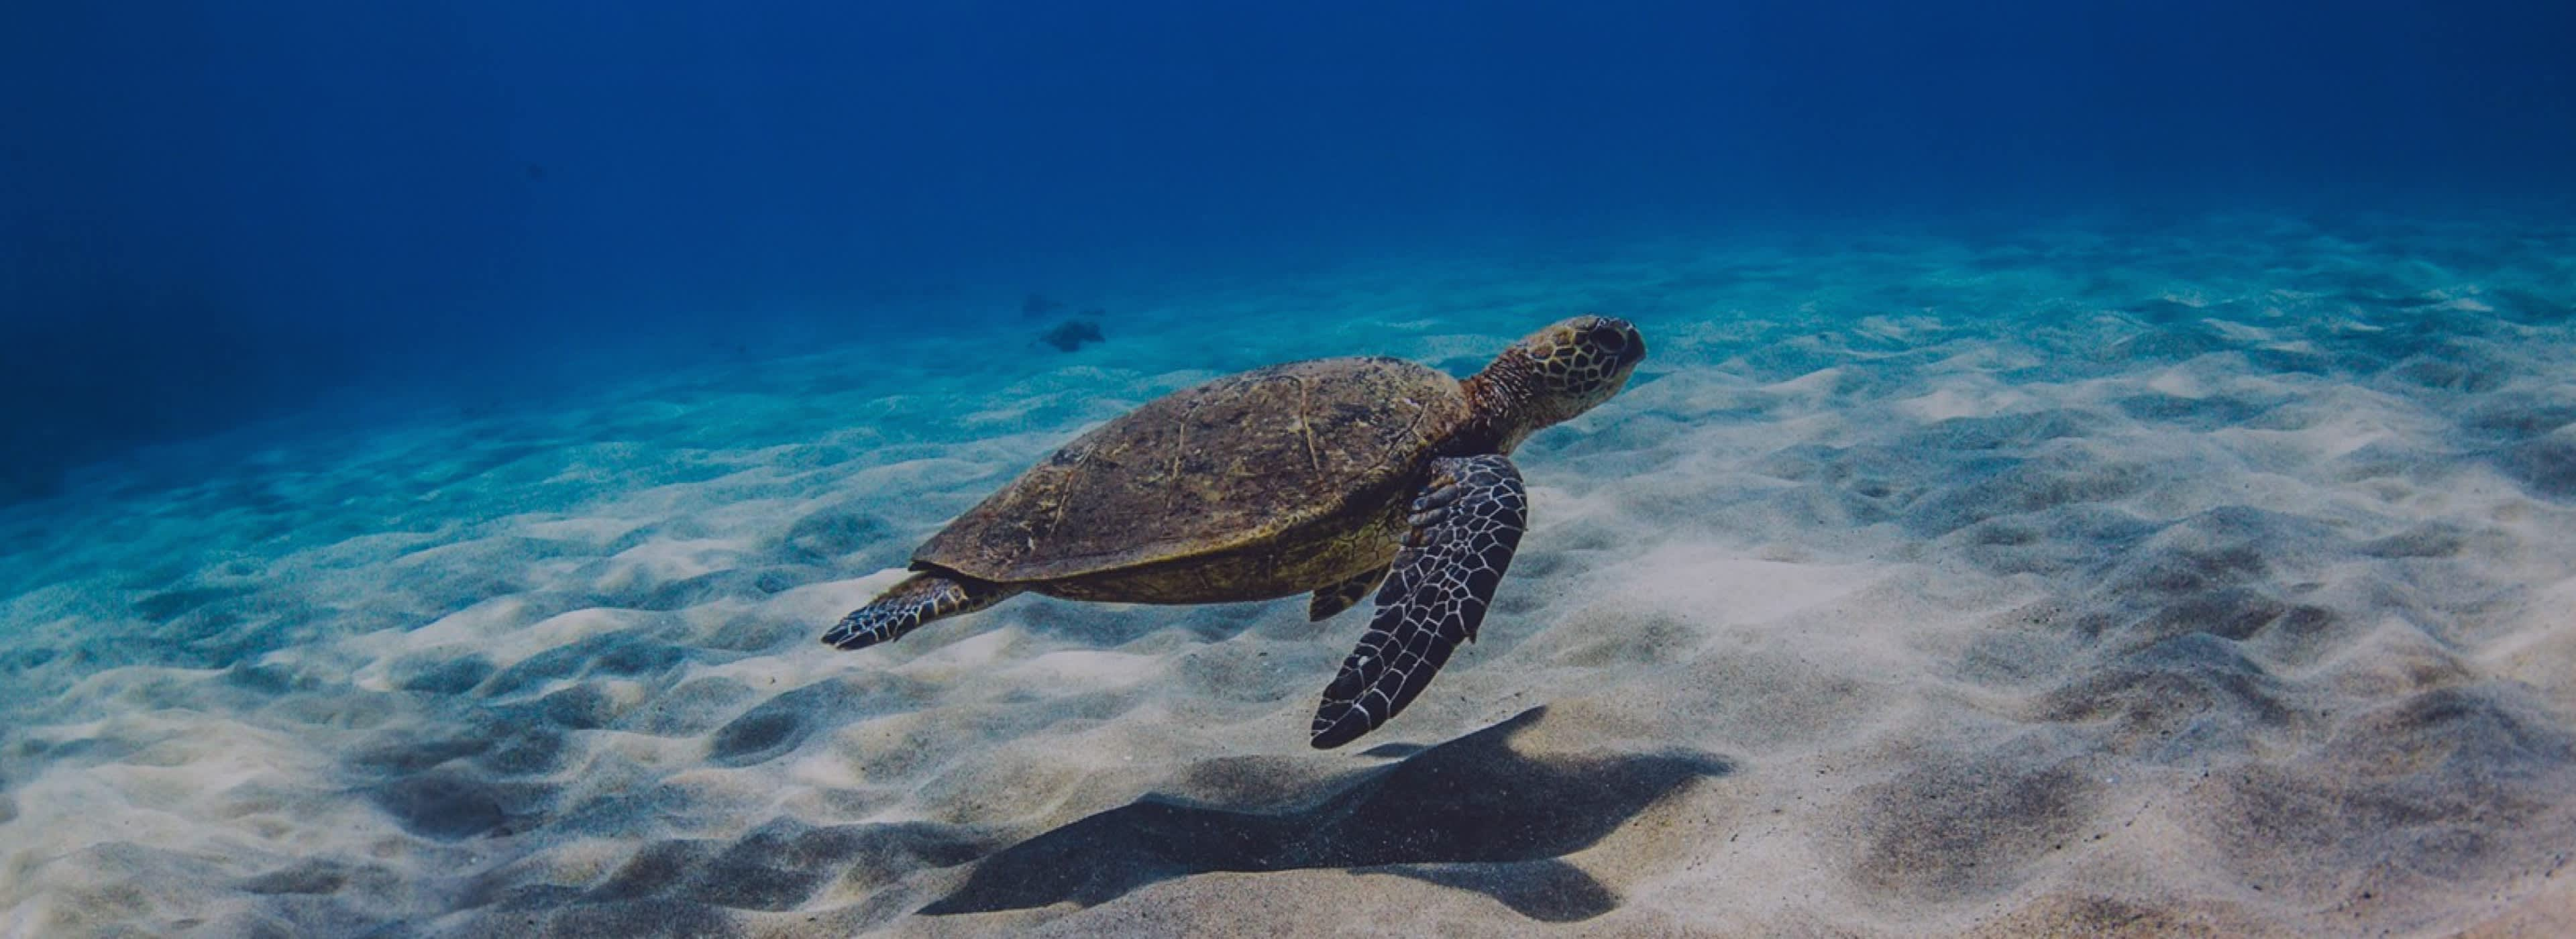 green sea turtle floating